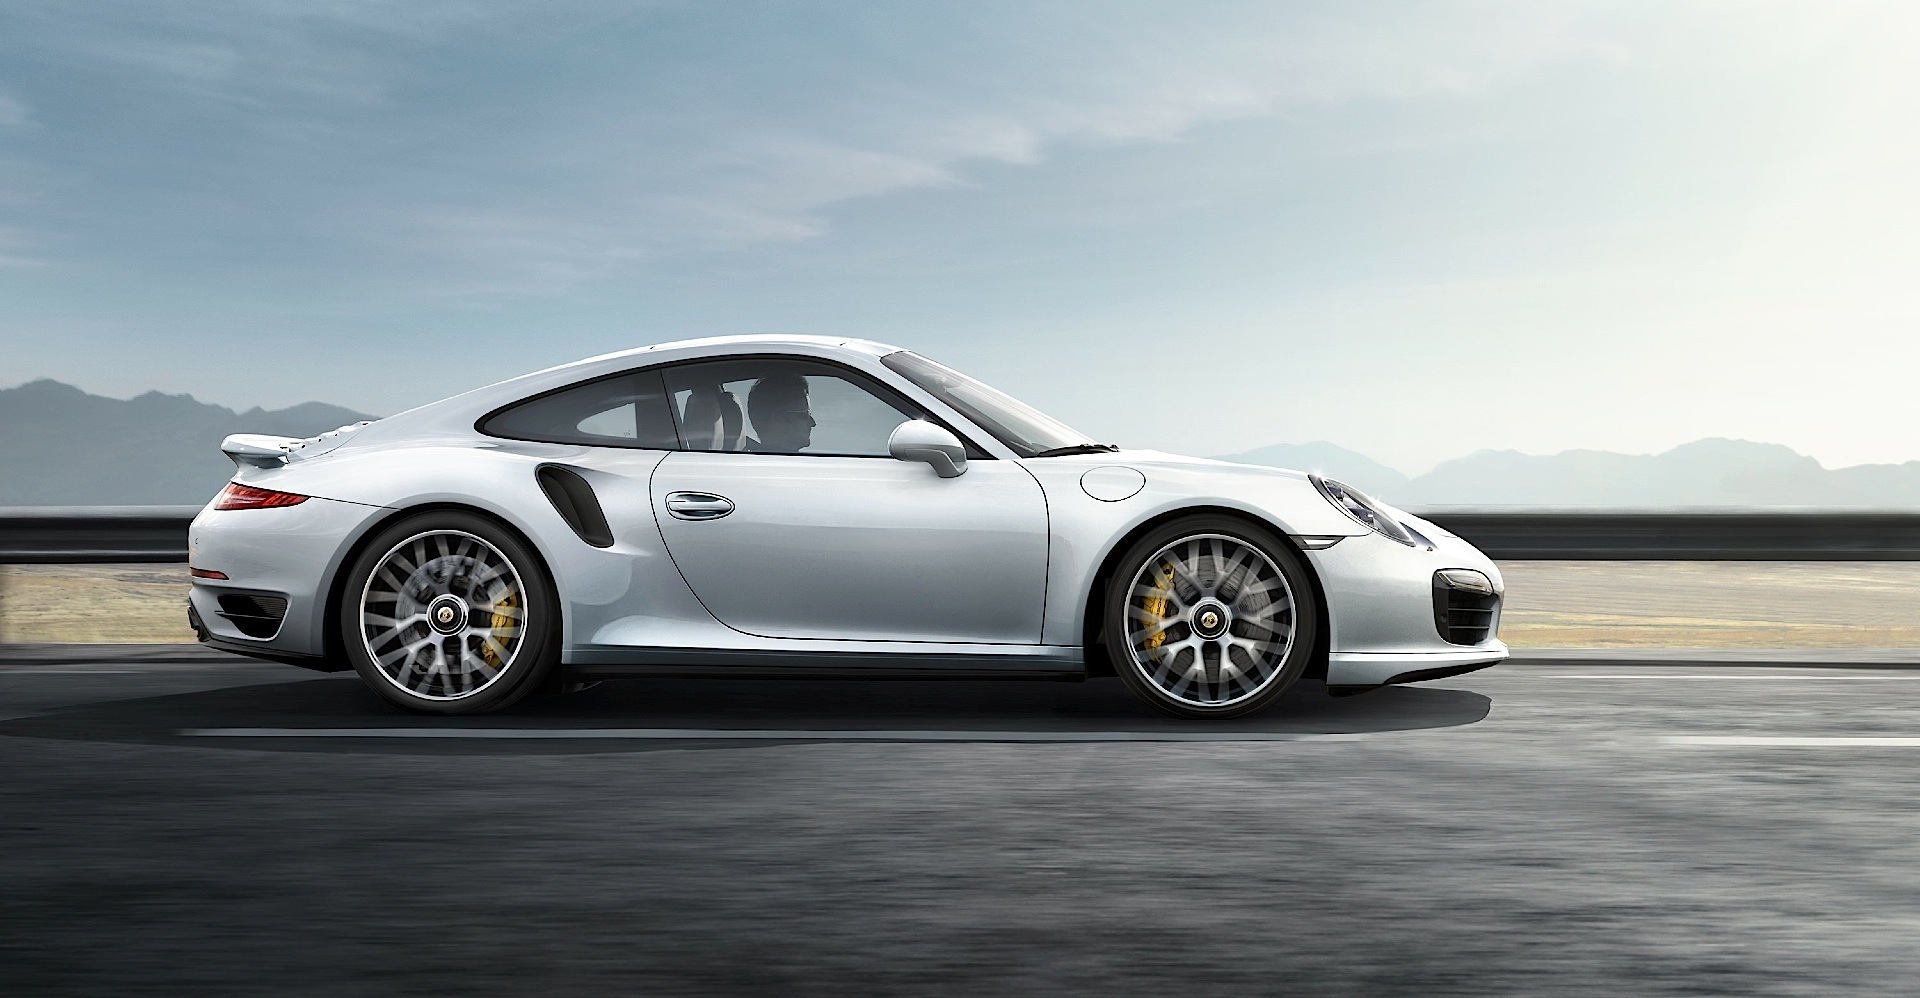 What Makes the Porsche 911 Turbo S So Special